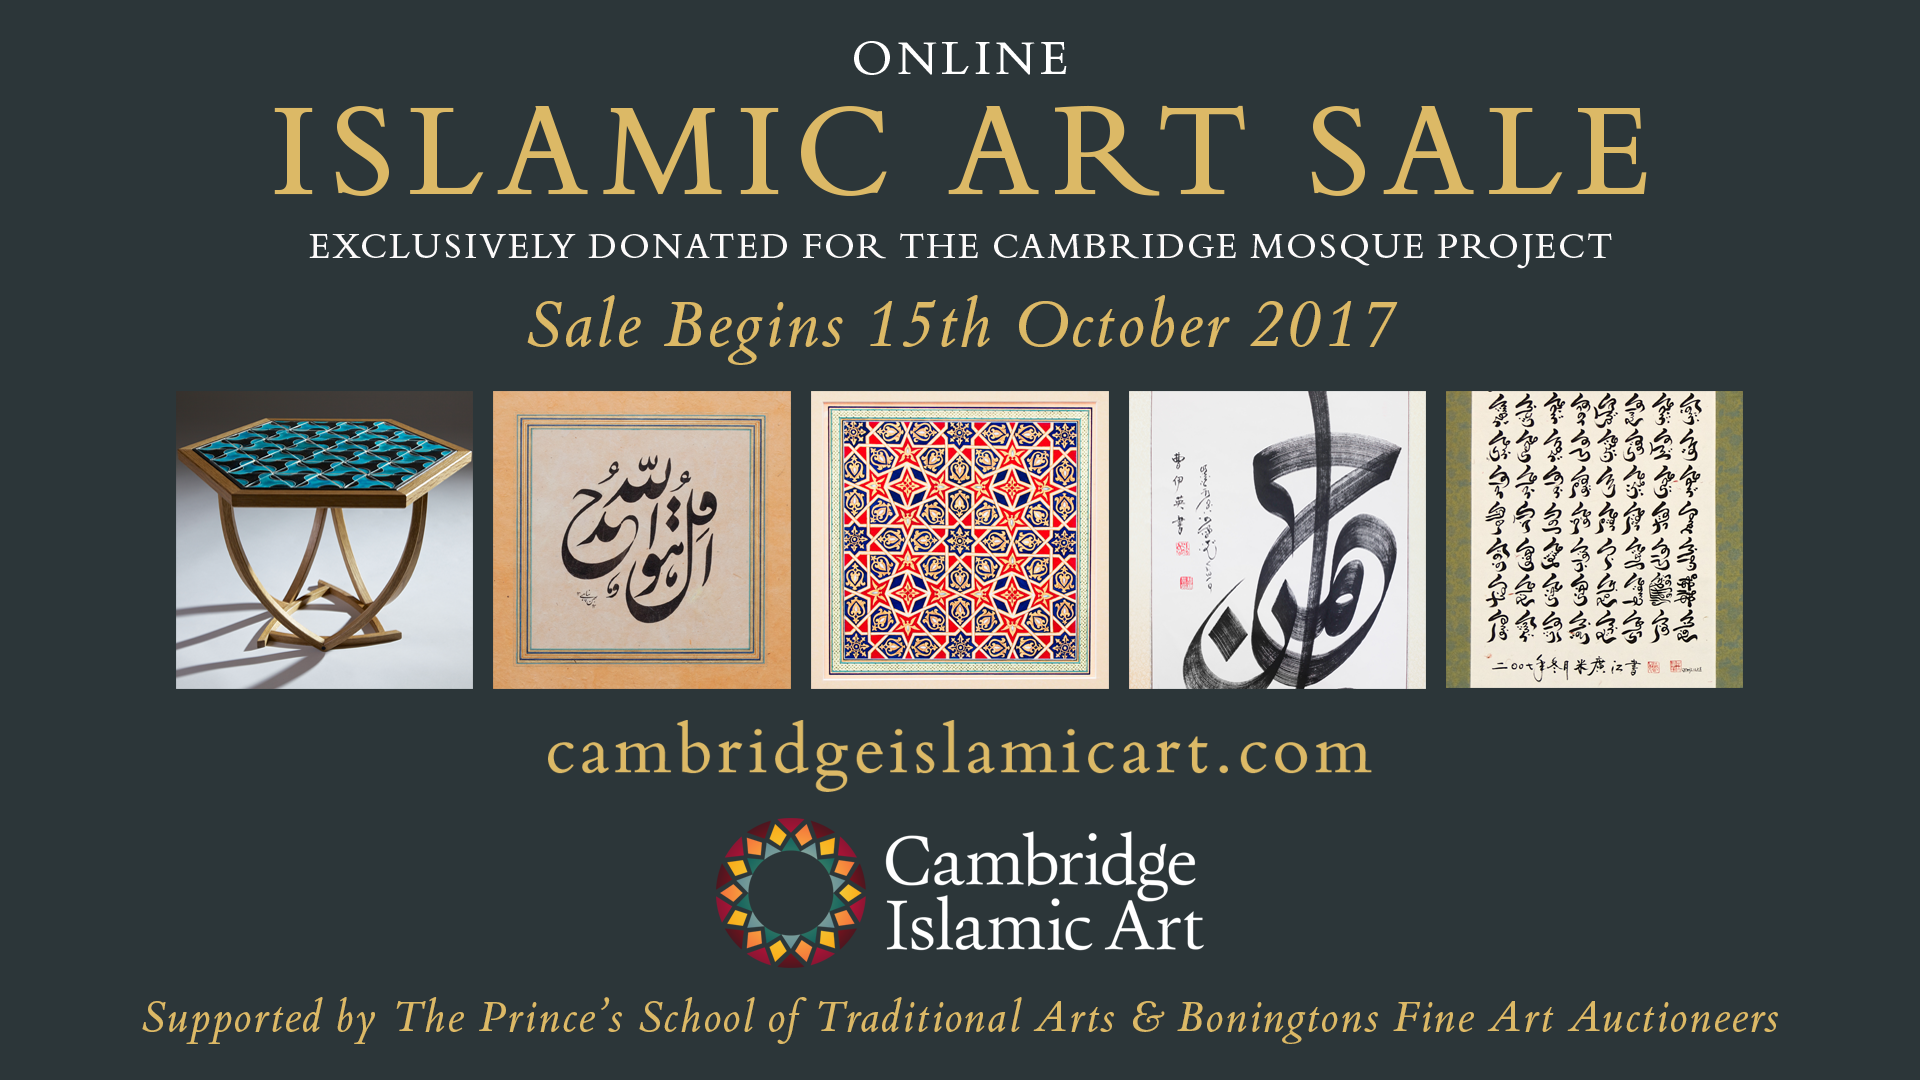 Cambridge Islamic Art Sales